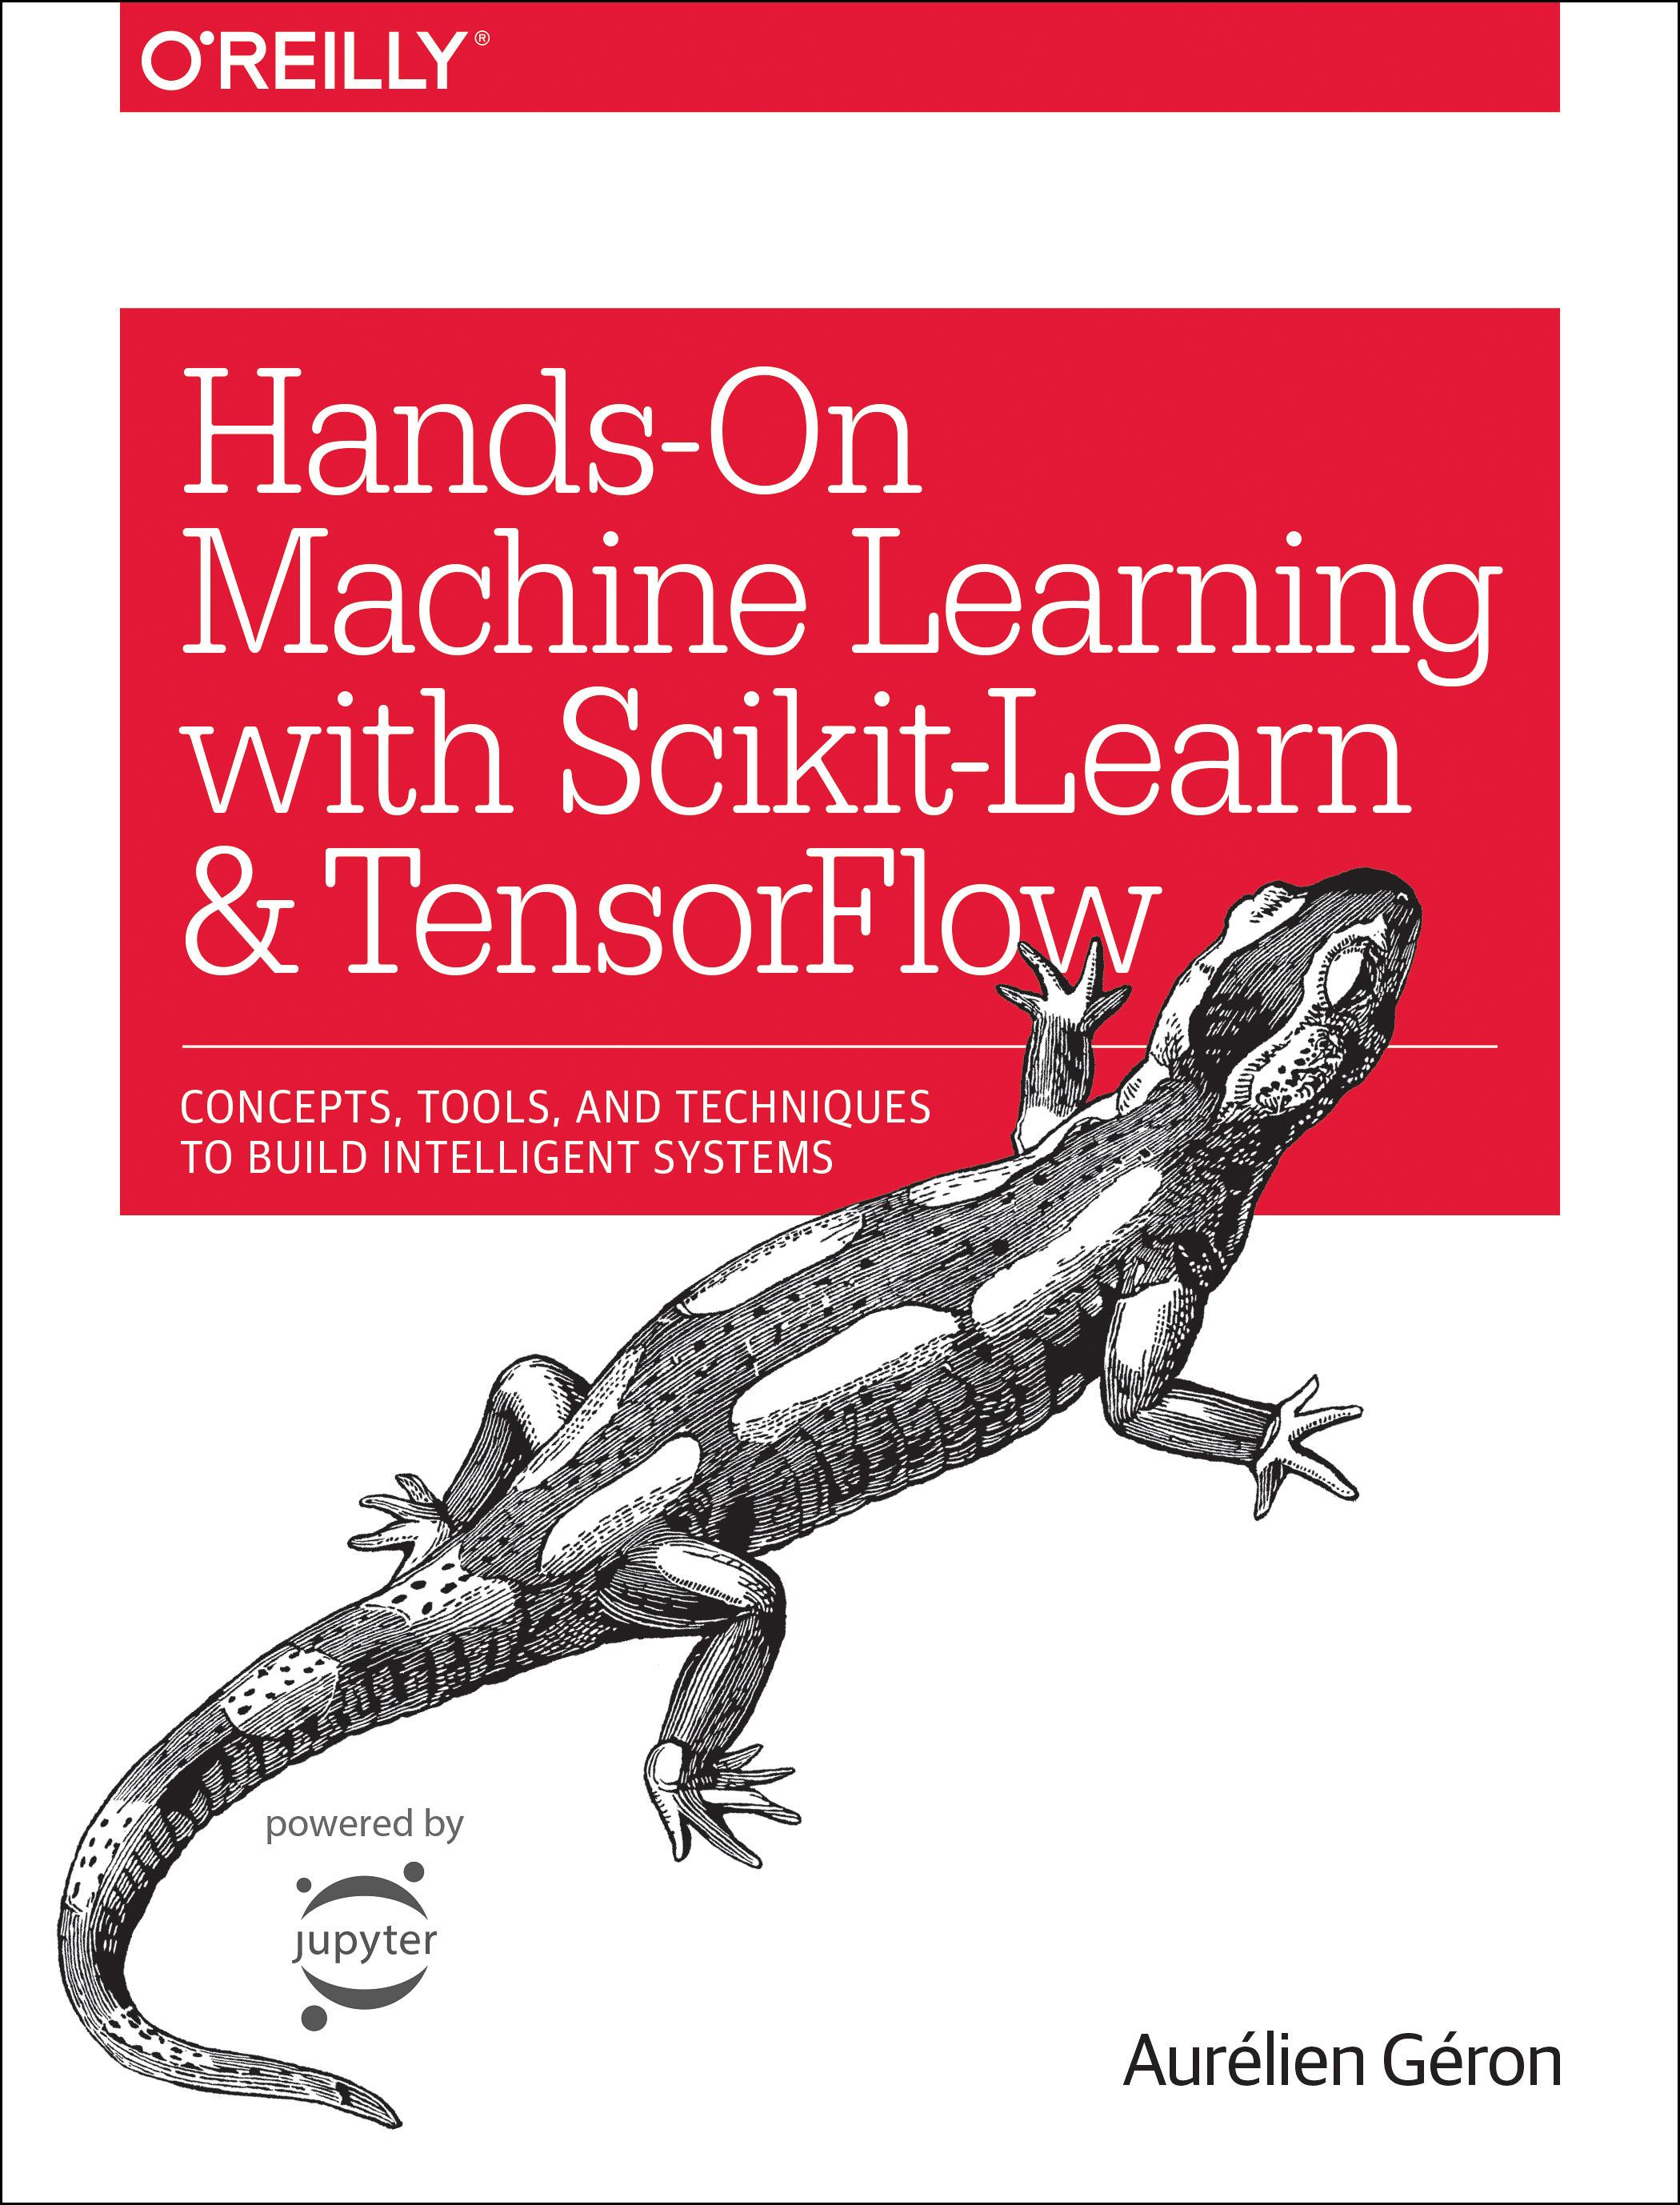 Hands-On Machine Learning with Scikit-Learn and TensorFlow: Concepts, Tools, and Techniques to Build Intelligent Systems 1st Edition